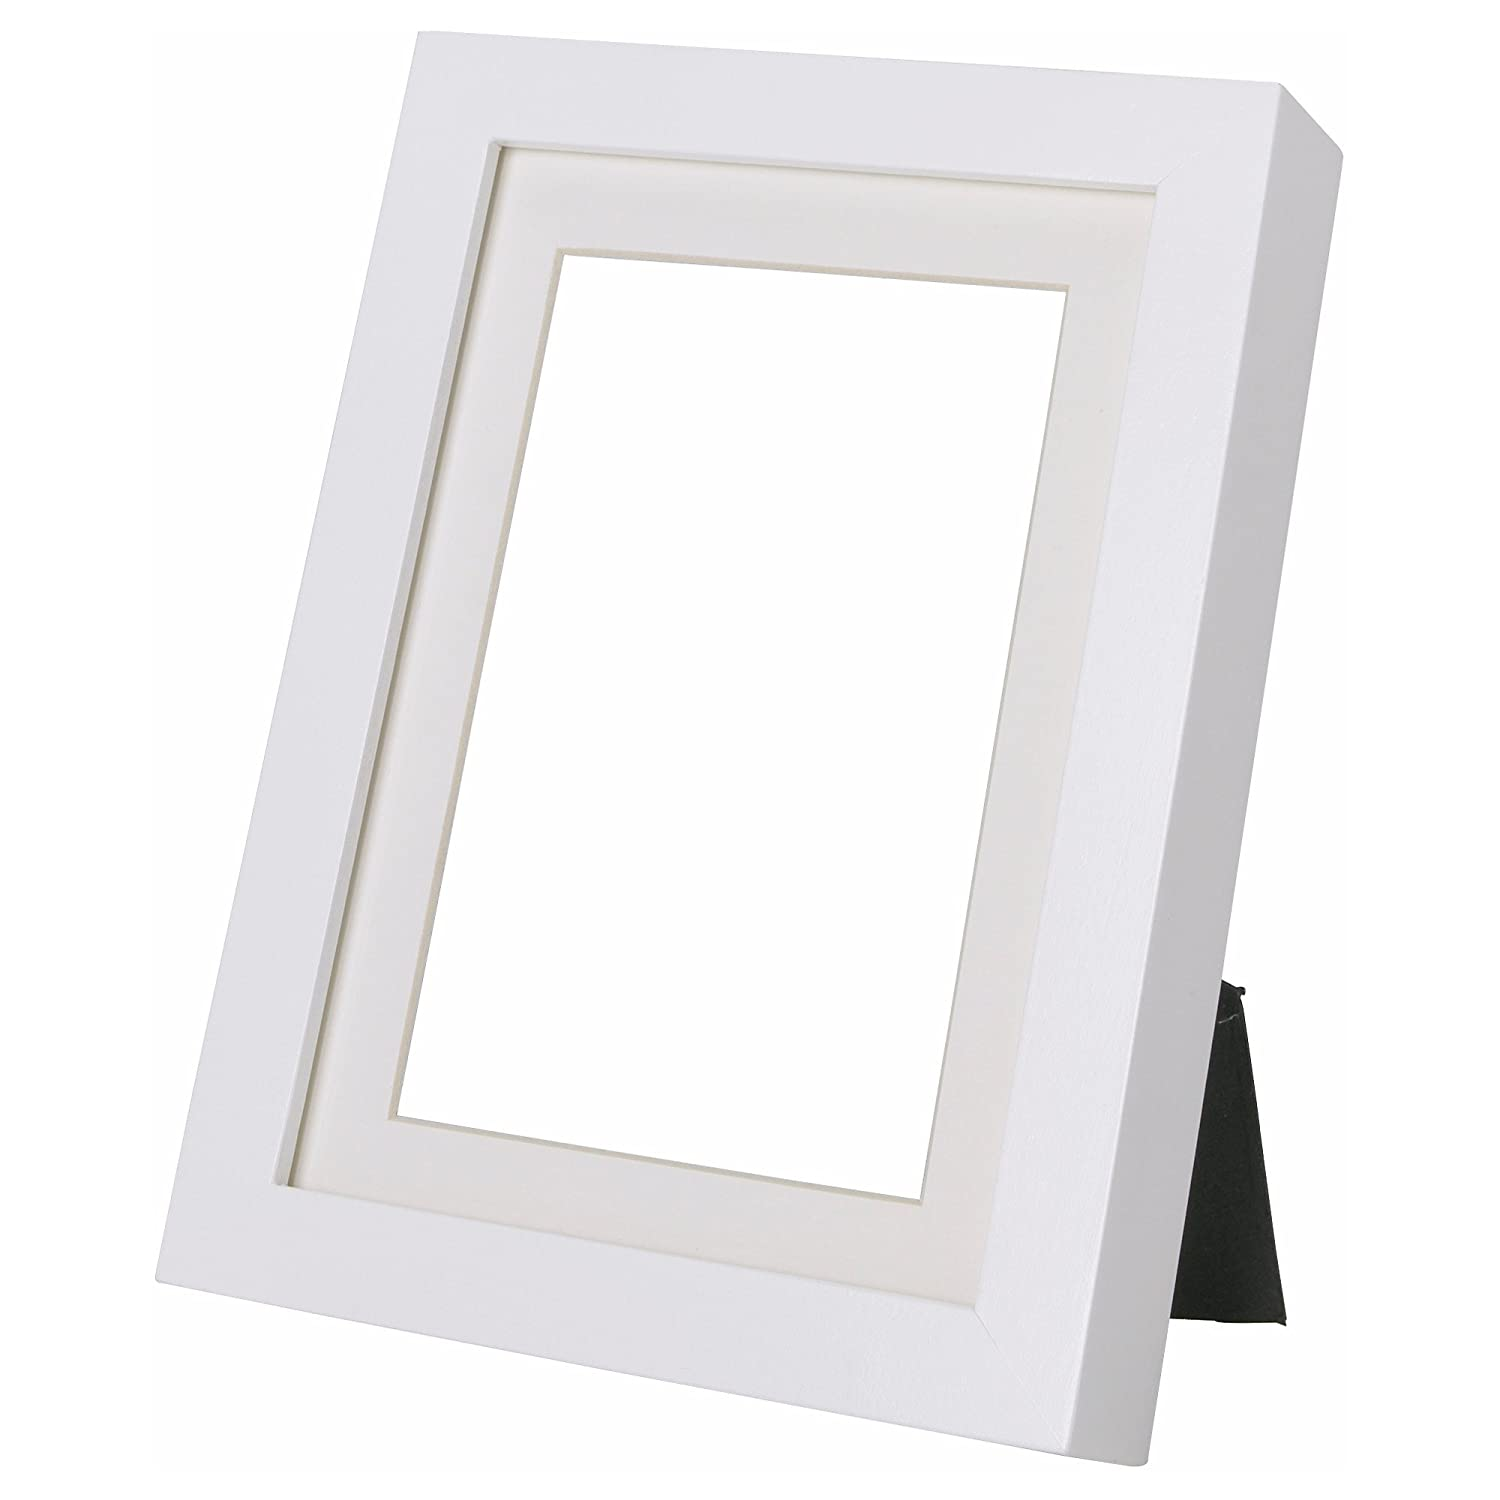 Ikea Ribba White 8 X 10 Picture Frame by IKEA: Amazon.co.uk: Kitchen ...